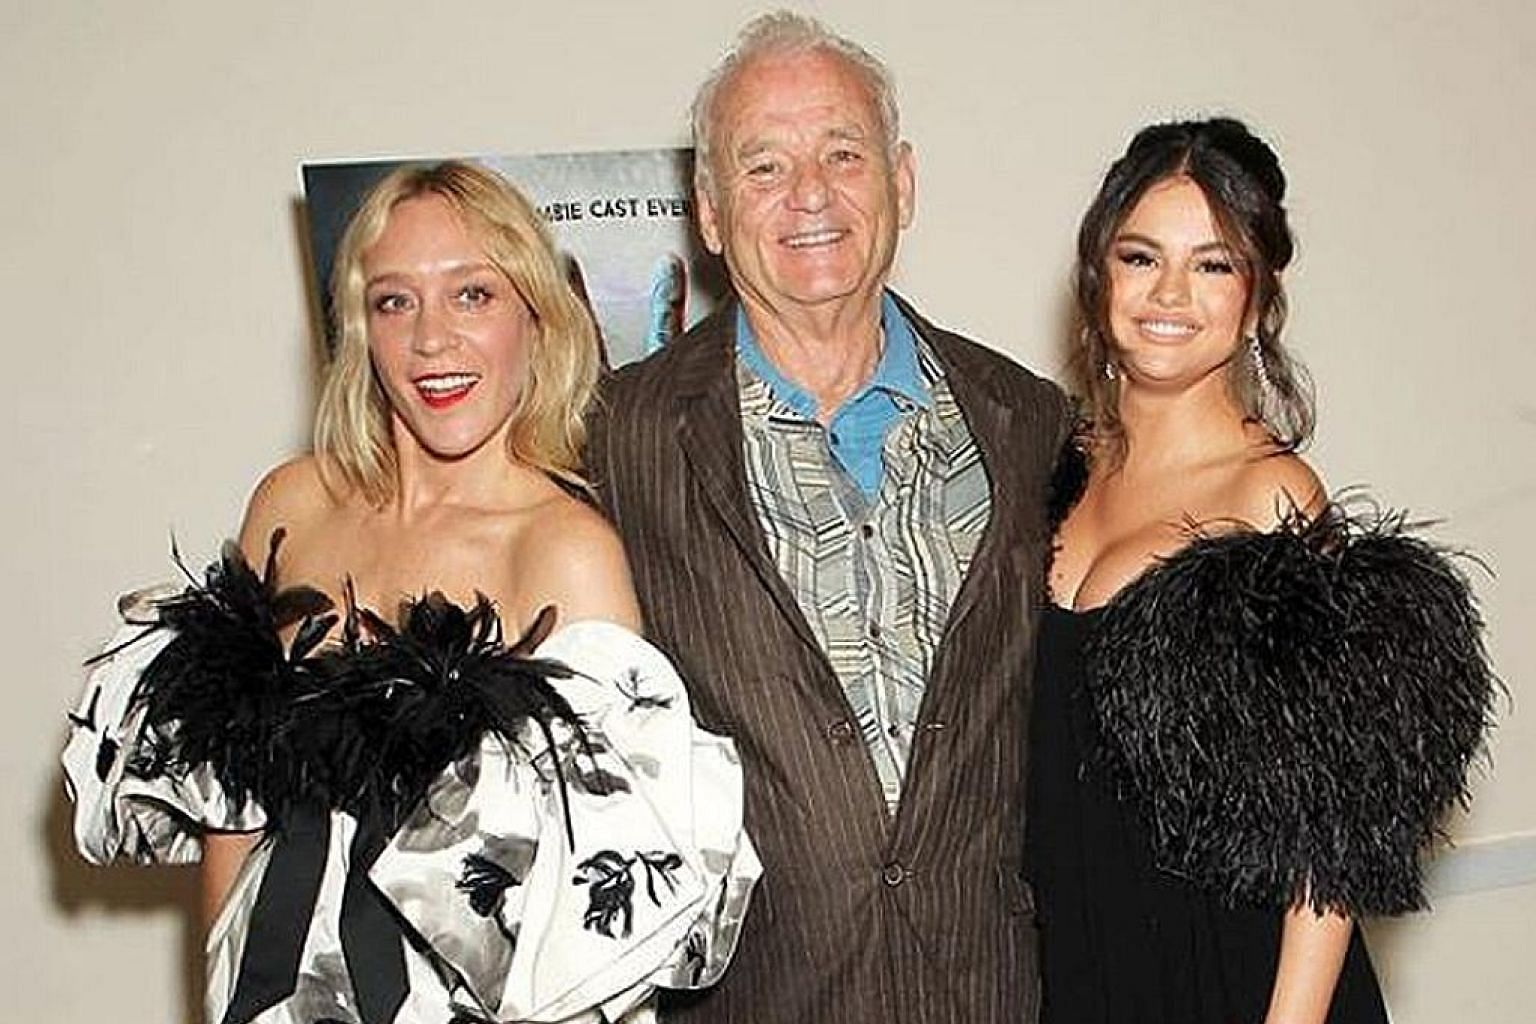 WOK ON: Does actor-comedian Bill Murray (centre, with The Dead Don't Die cast members Chloe Sevigny, far left, and Selena Gomez) really need to work in a restaurant to make ends meet? He told Amy Schumer in her recent podcast, 3 Girls, One Keith, tha